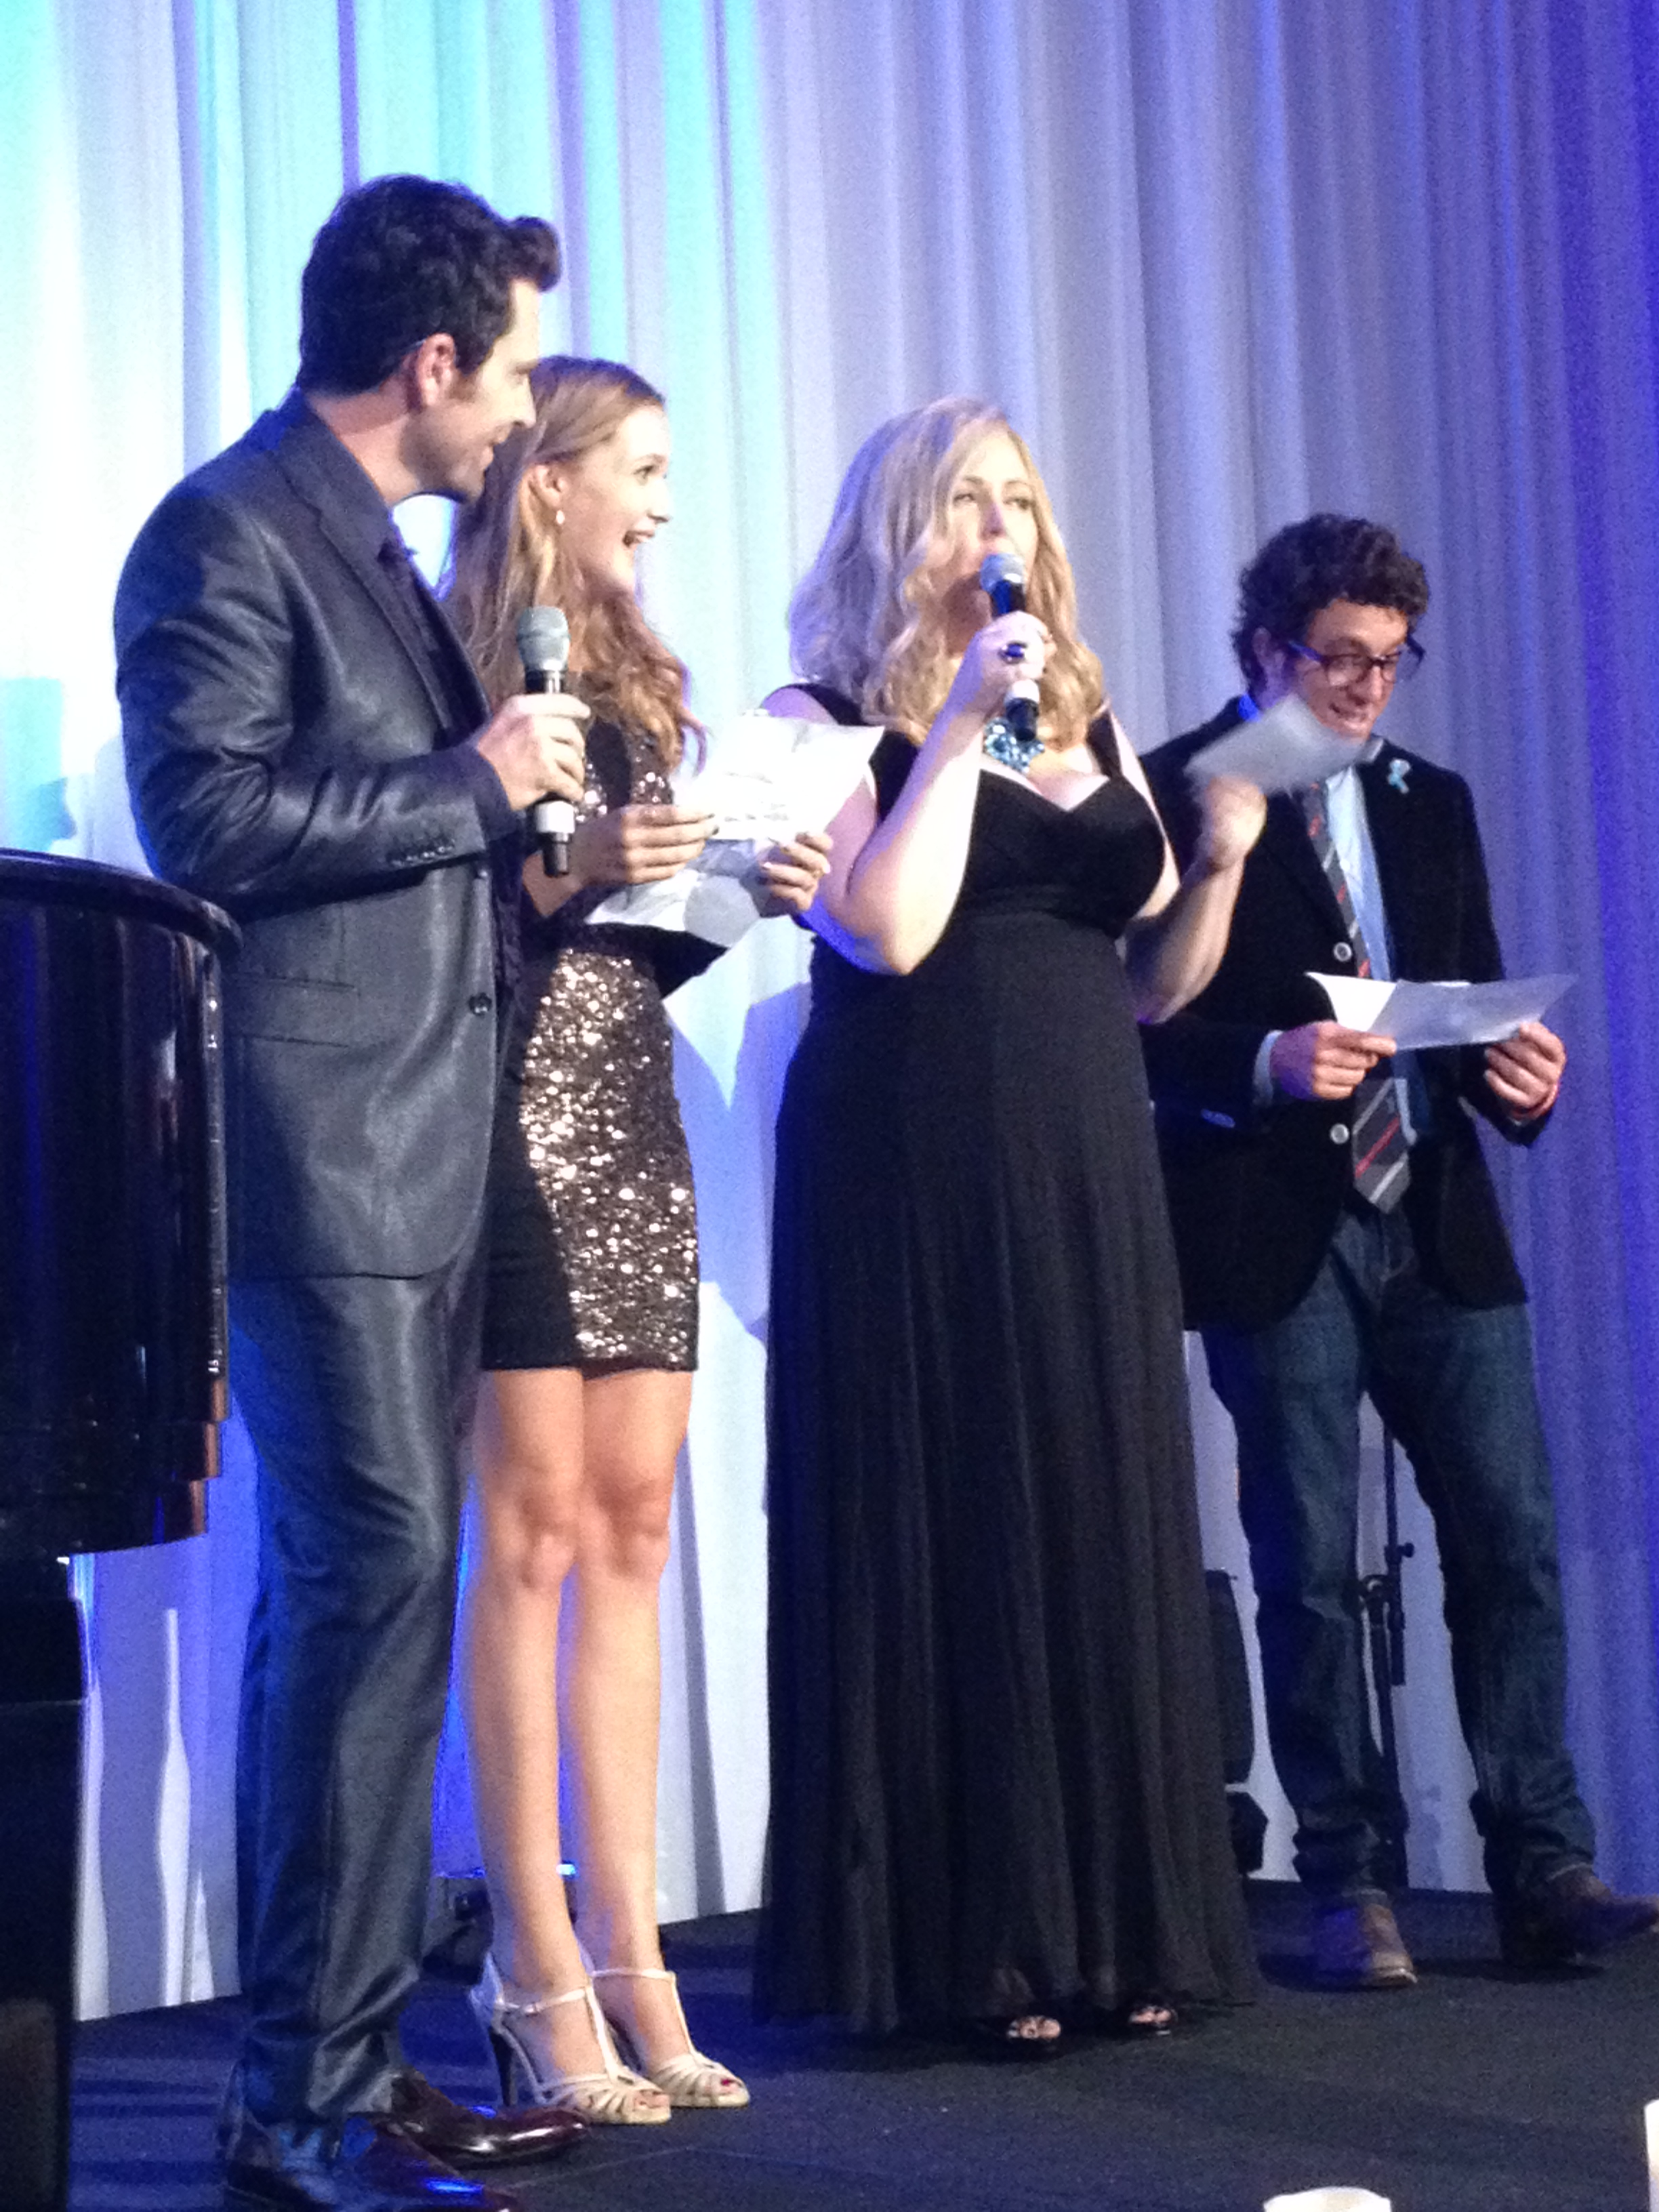 Chris Mann, Gracie Van Brunt, Katrina Parker and Elliot Yamin (Left to Right) Performing at the Tribute to Champions of Hope